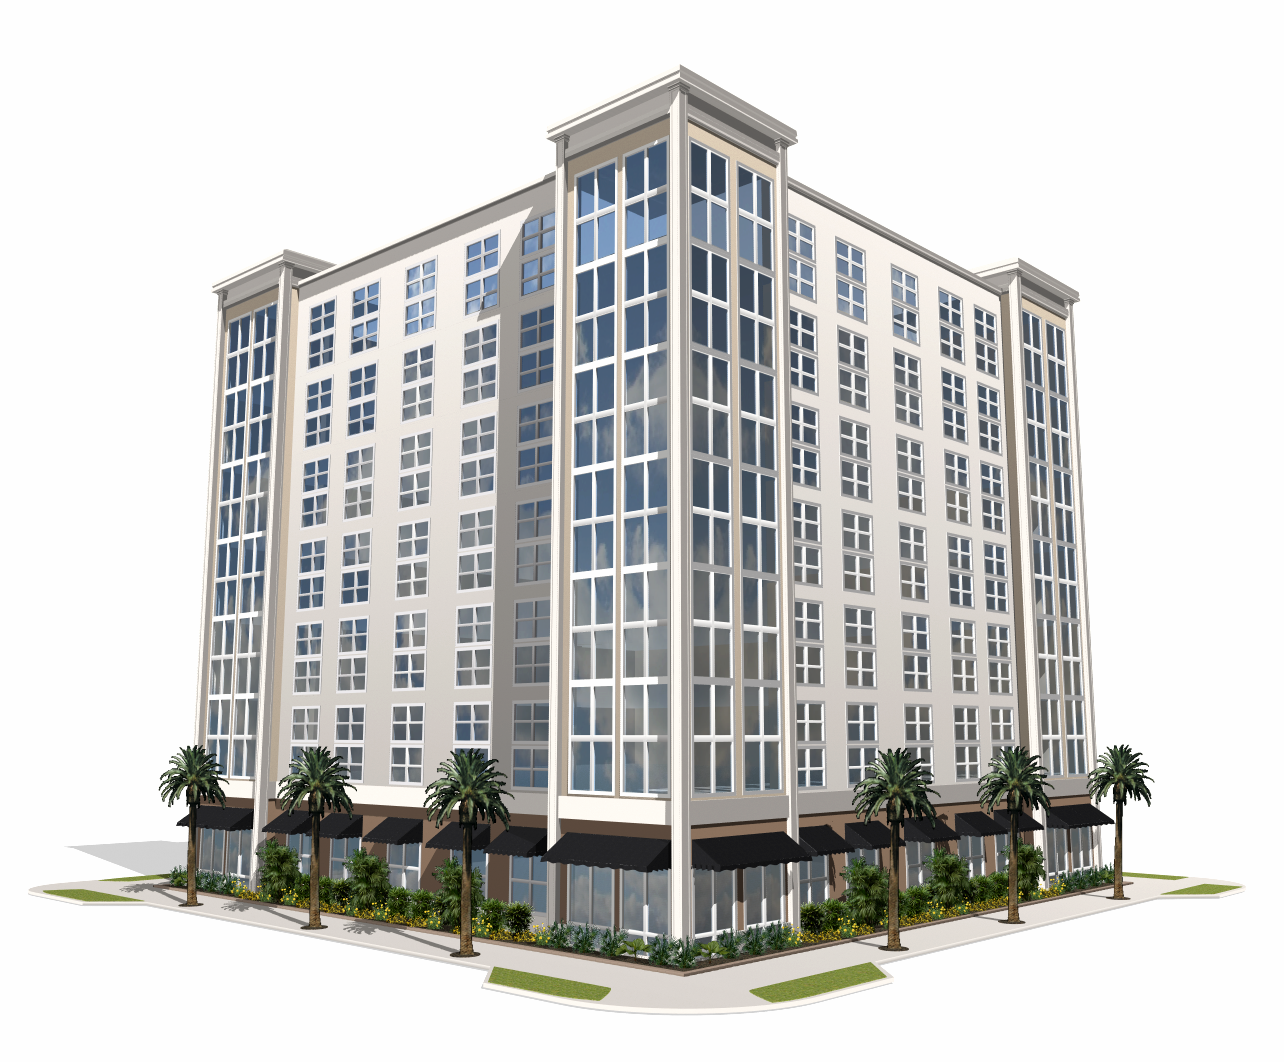 building-hd-png-office-building-clipart-1284.png